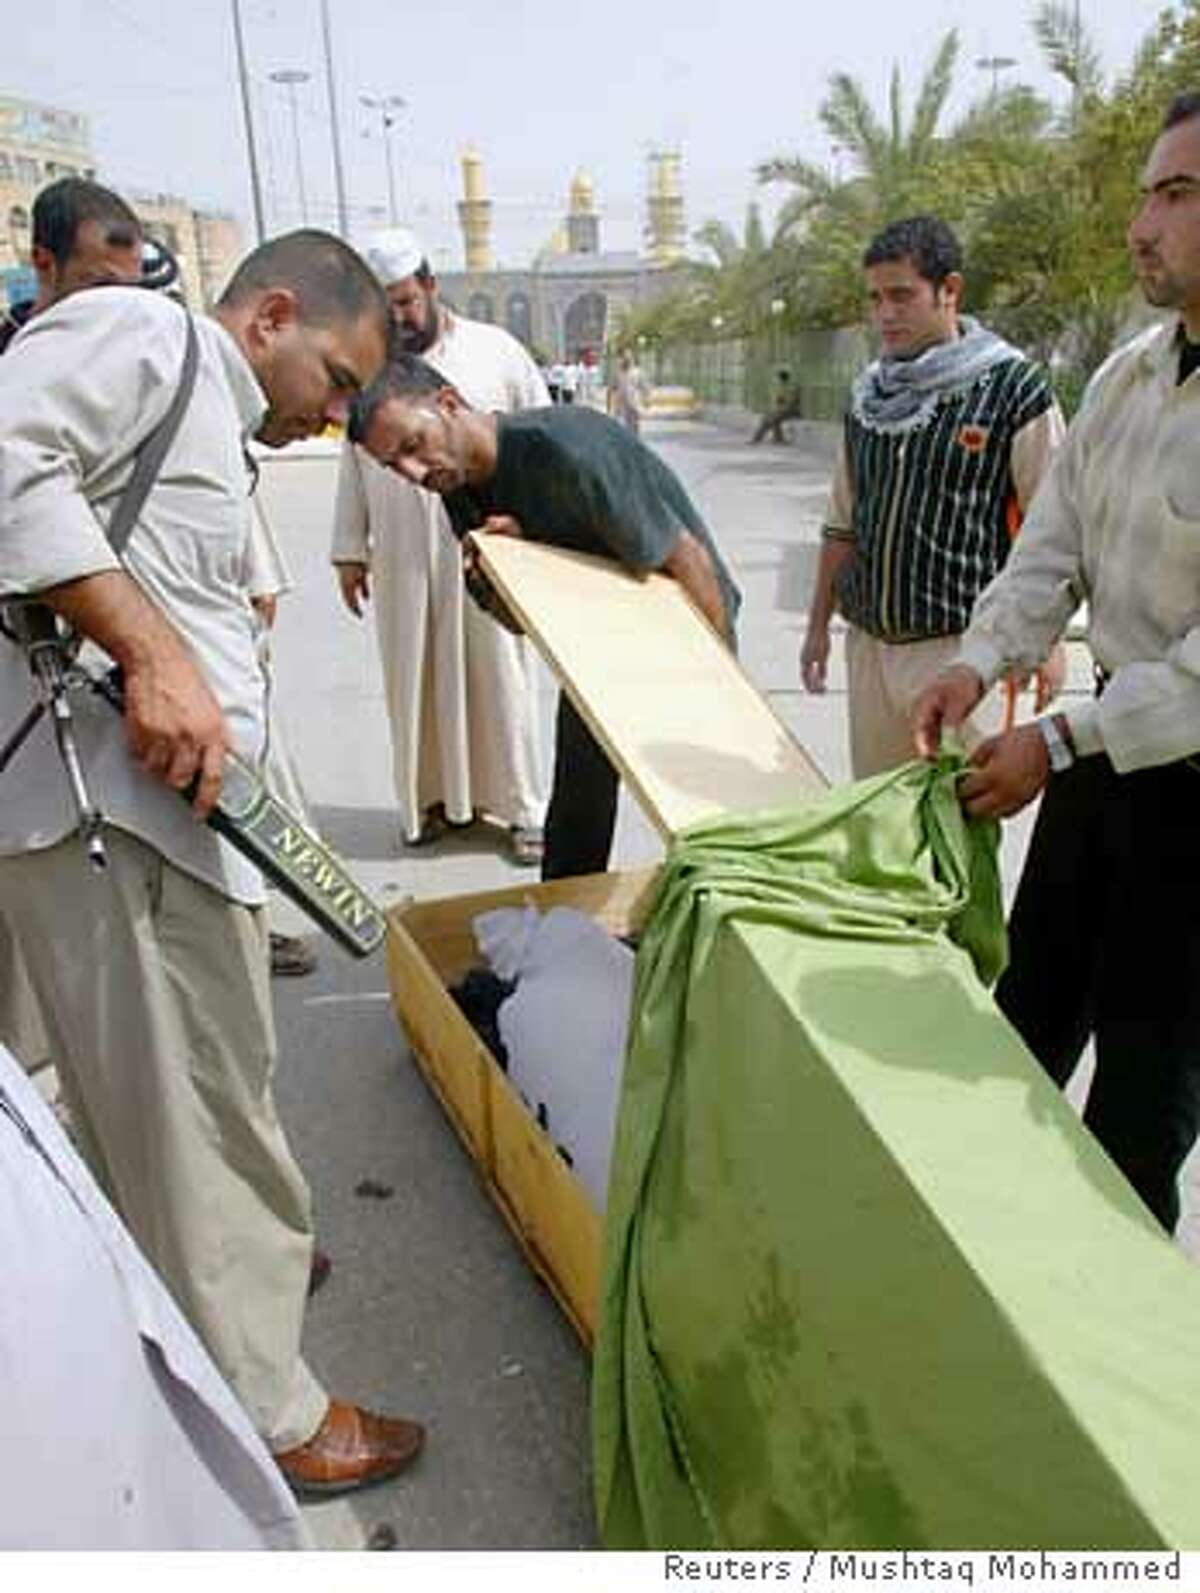 A shrine guard inspects the body of a Shi'ite pilgrim who was among those killed while heading to attend a religious festival in the Khadimiya shrine, during a funeral in Kerbala, 110 km (70 miles) south of Baghdad, August 20, 2006. At least 20 people died and 300 were hurt in Baghdad on Sunday after insurgents, including roof-top snipers, ambushed pilgrims gathering in their hundreds of thousands for a sacred Shi'ite festival. REUTERS/Mushtaq Mohammed (IRAQ)